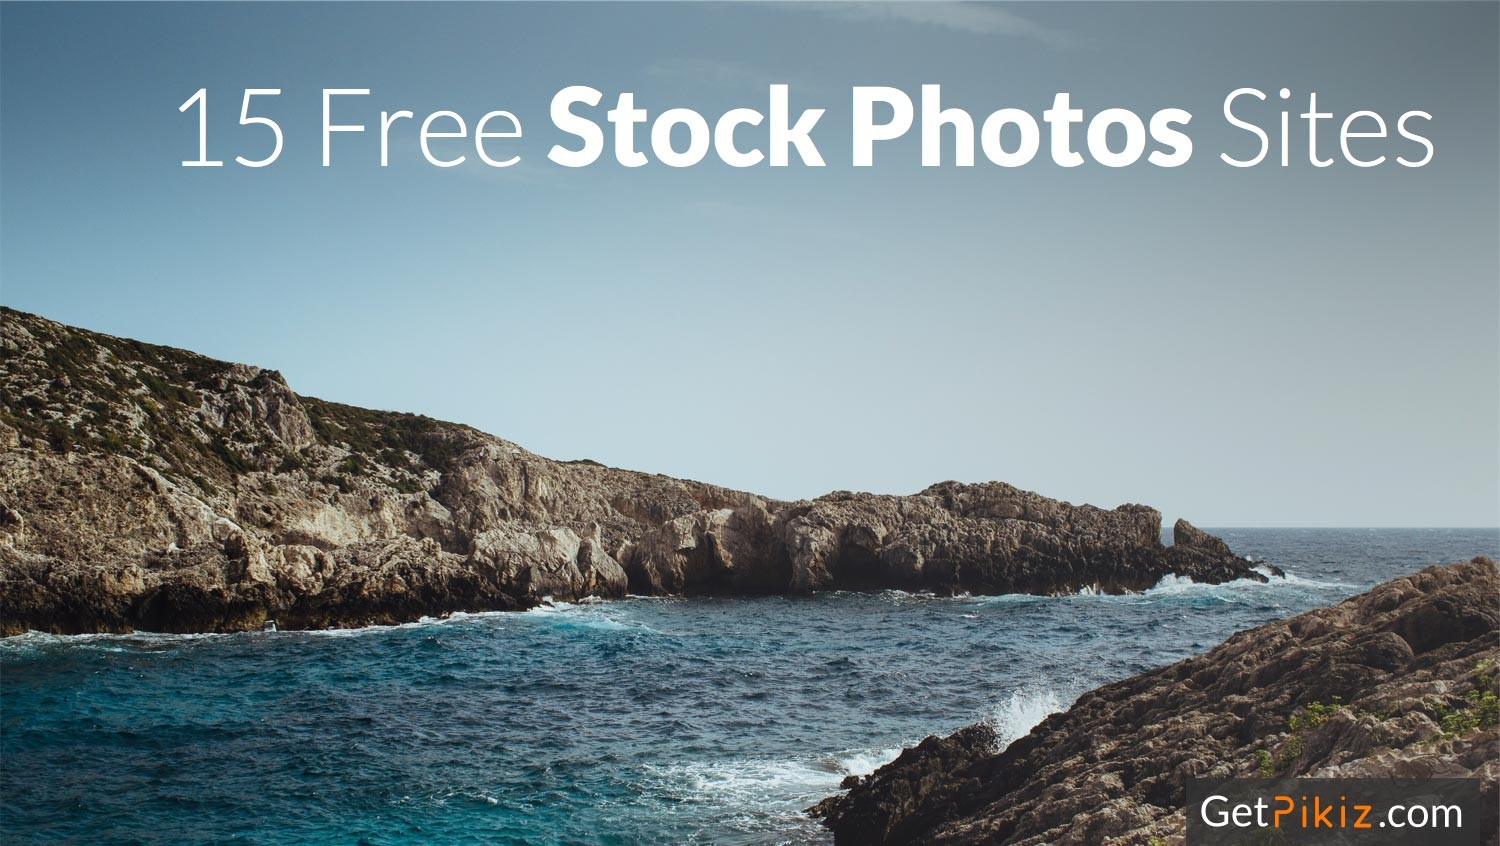 15 Free Stock Photos Sites